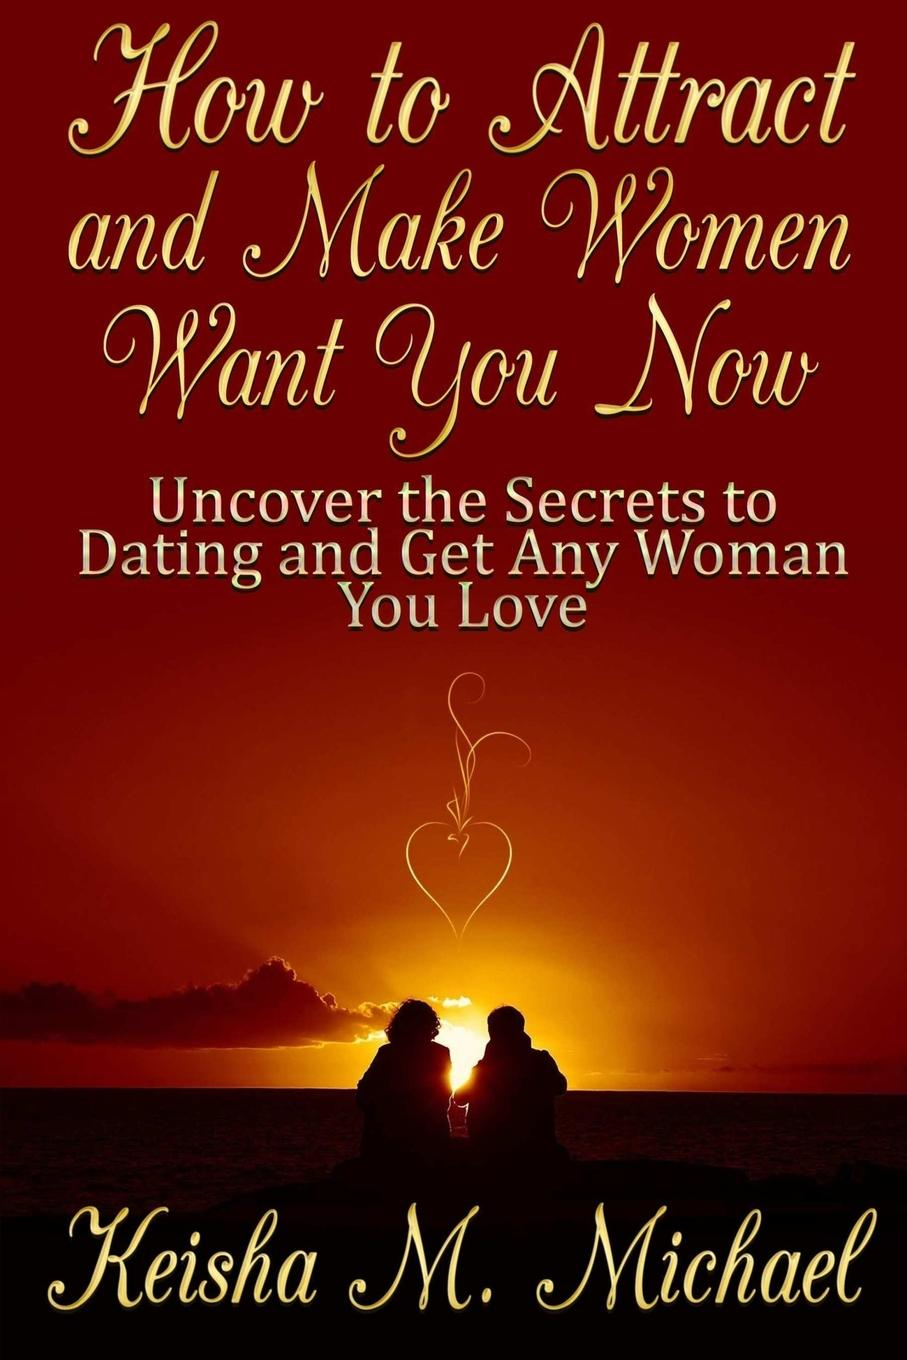 Keisha M. Michael How to Attract and Make Women Want You Now. Uncover the Secrets to Dating and Get Any Woman You Love